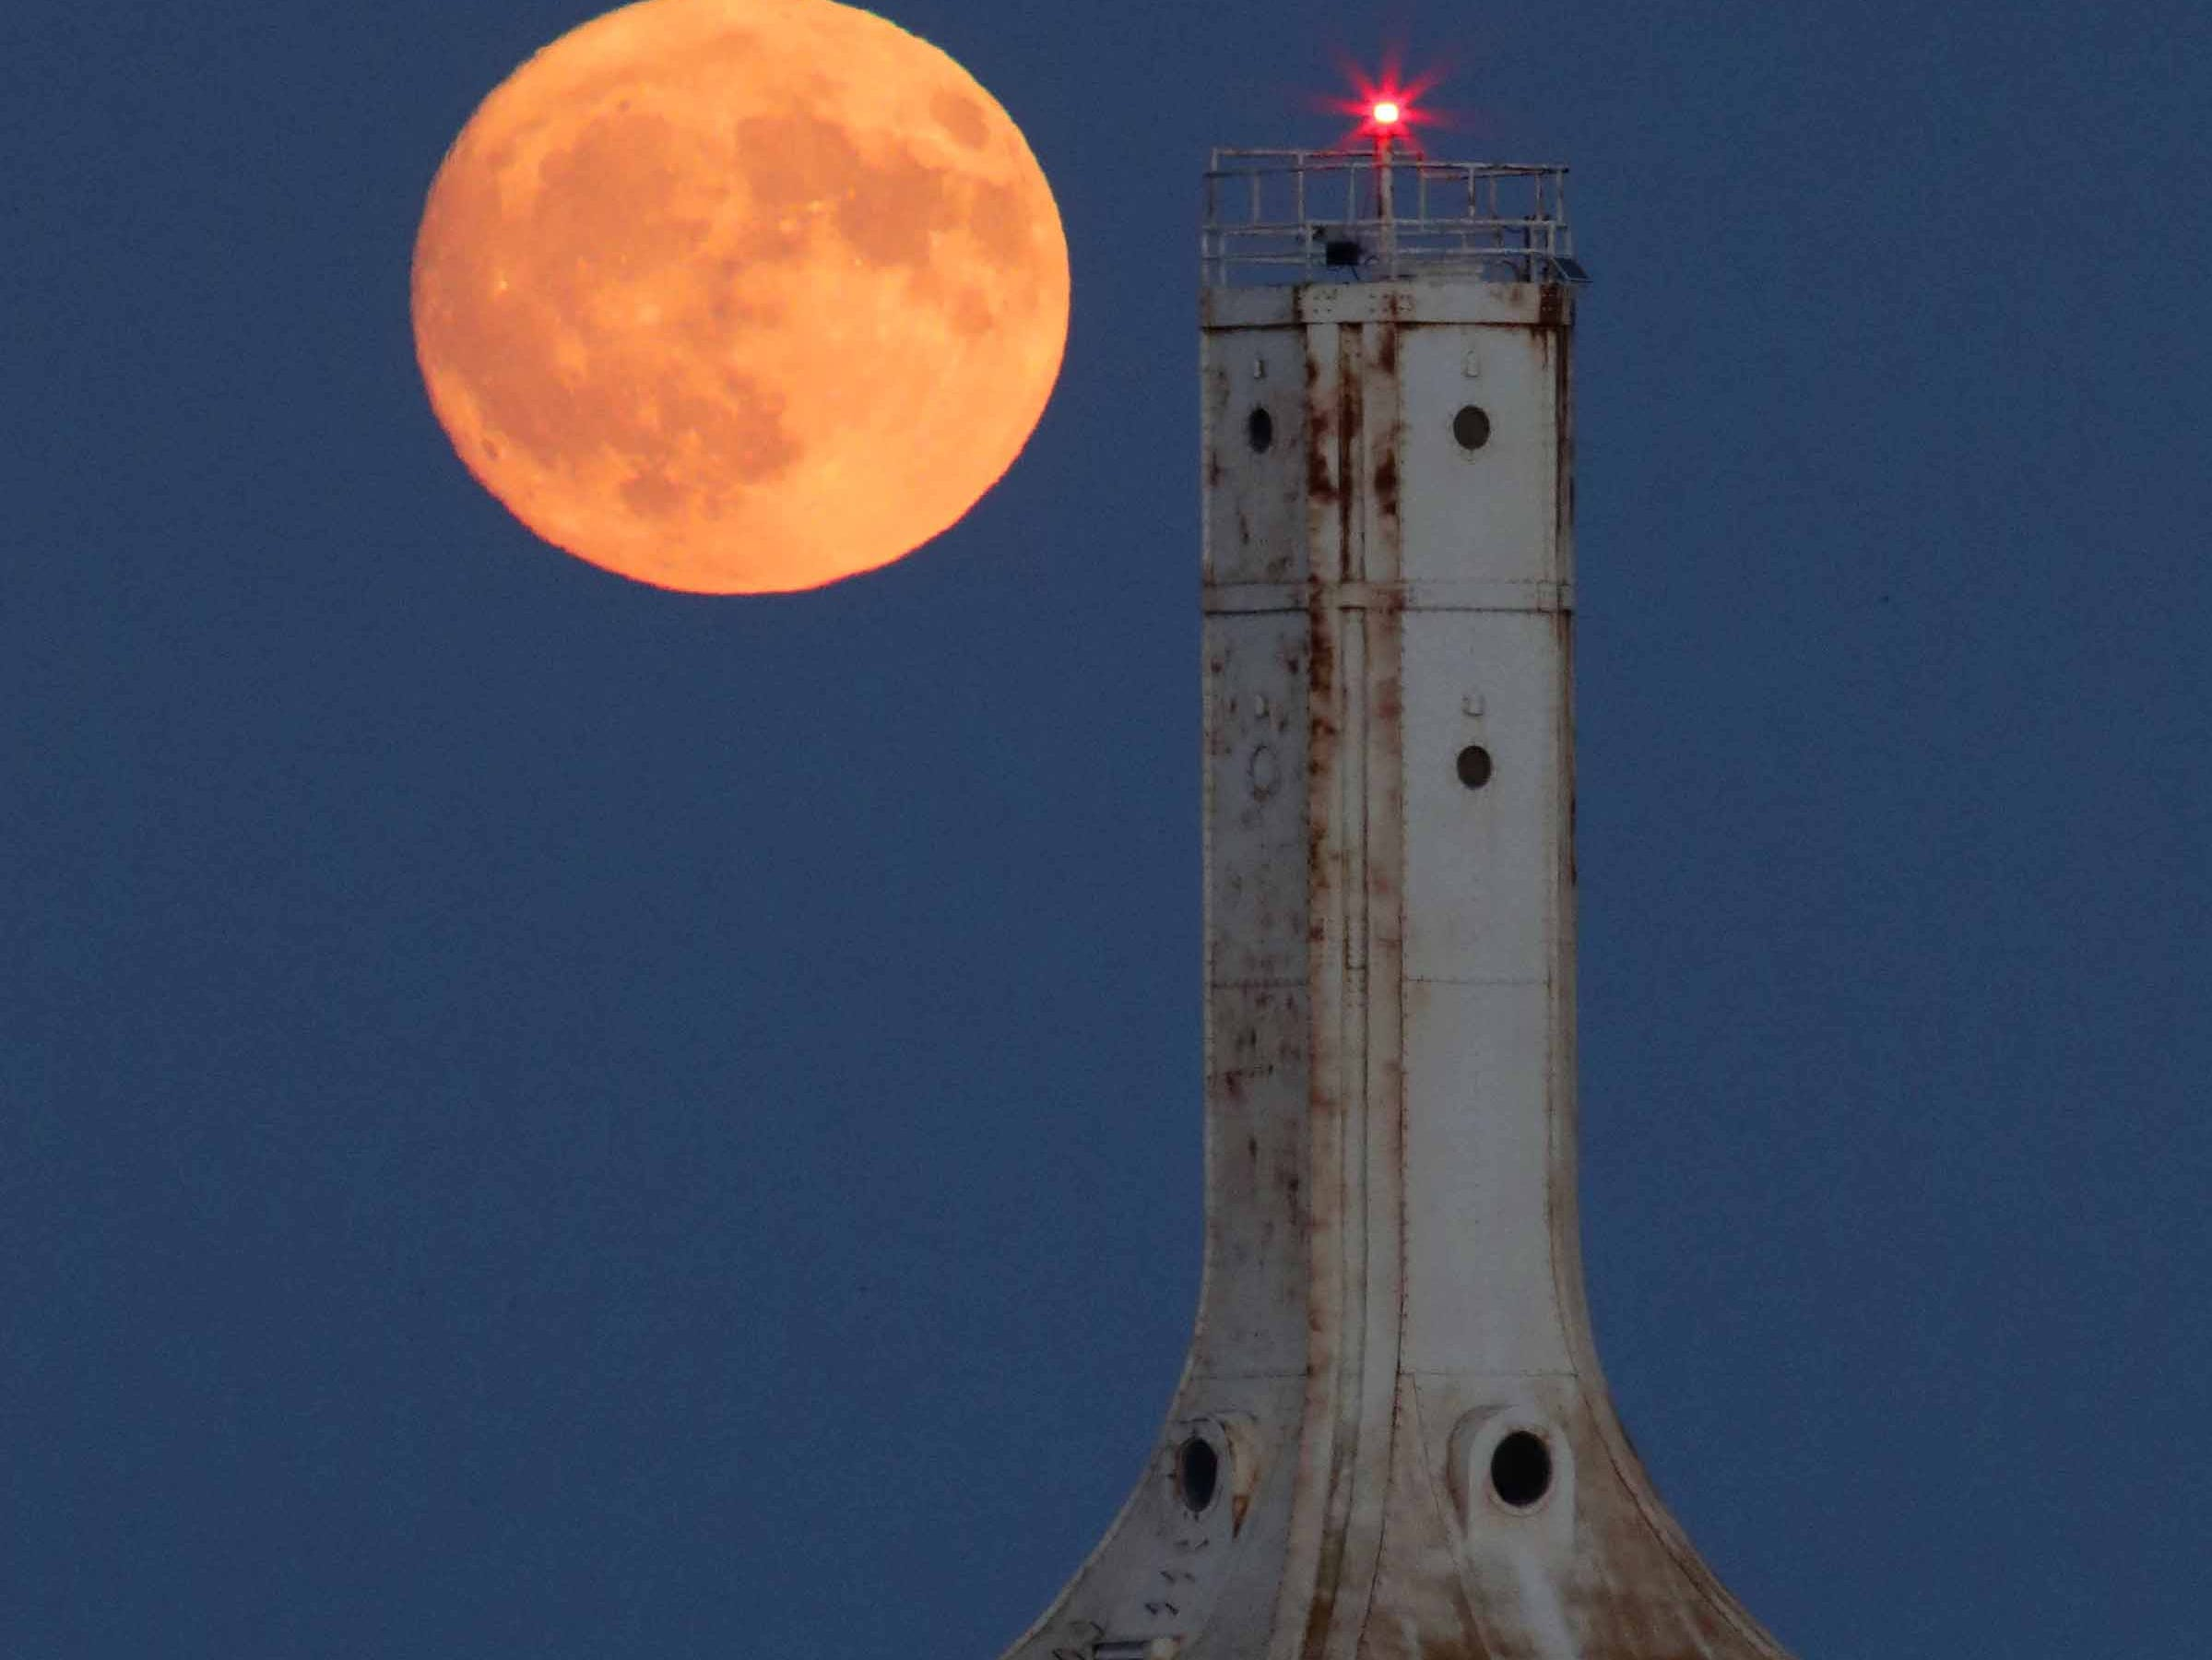 A nearly full waxing gibbous moon, at 99.4% full, rises over Lake Michigan behind the Port Washington breakwater light lighthouse on Oct. 23.